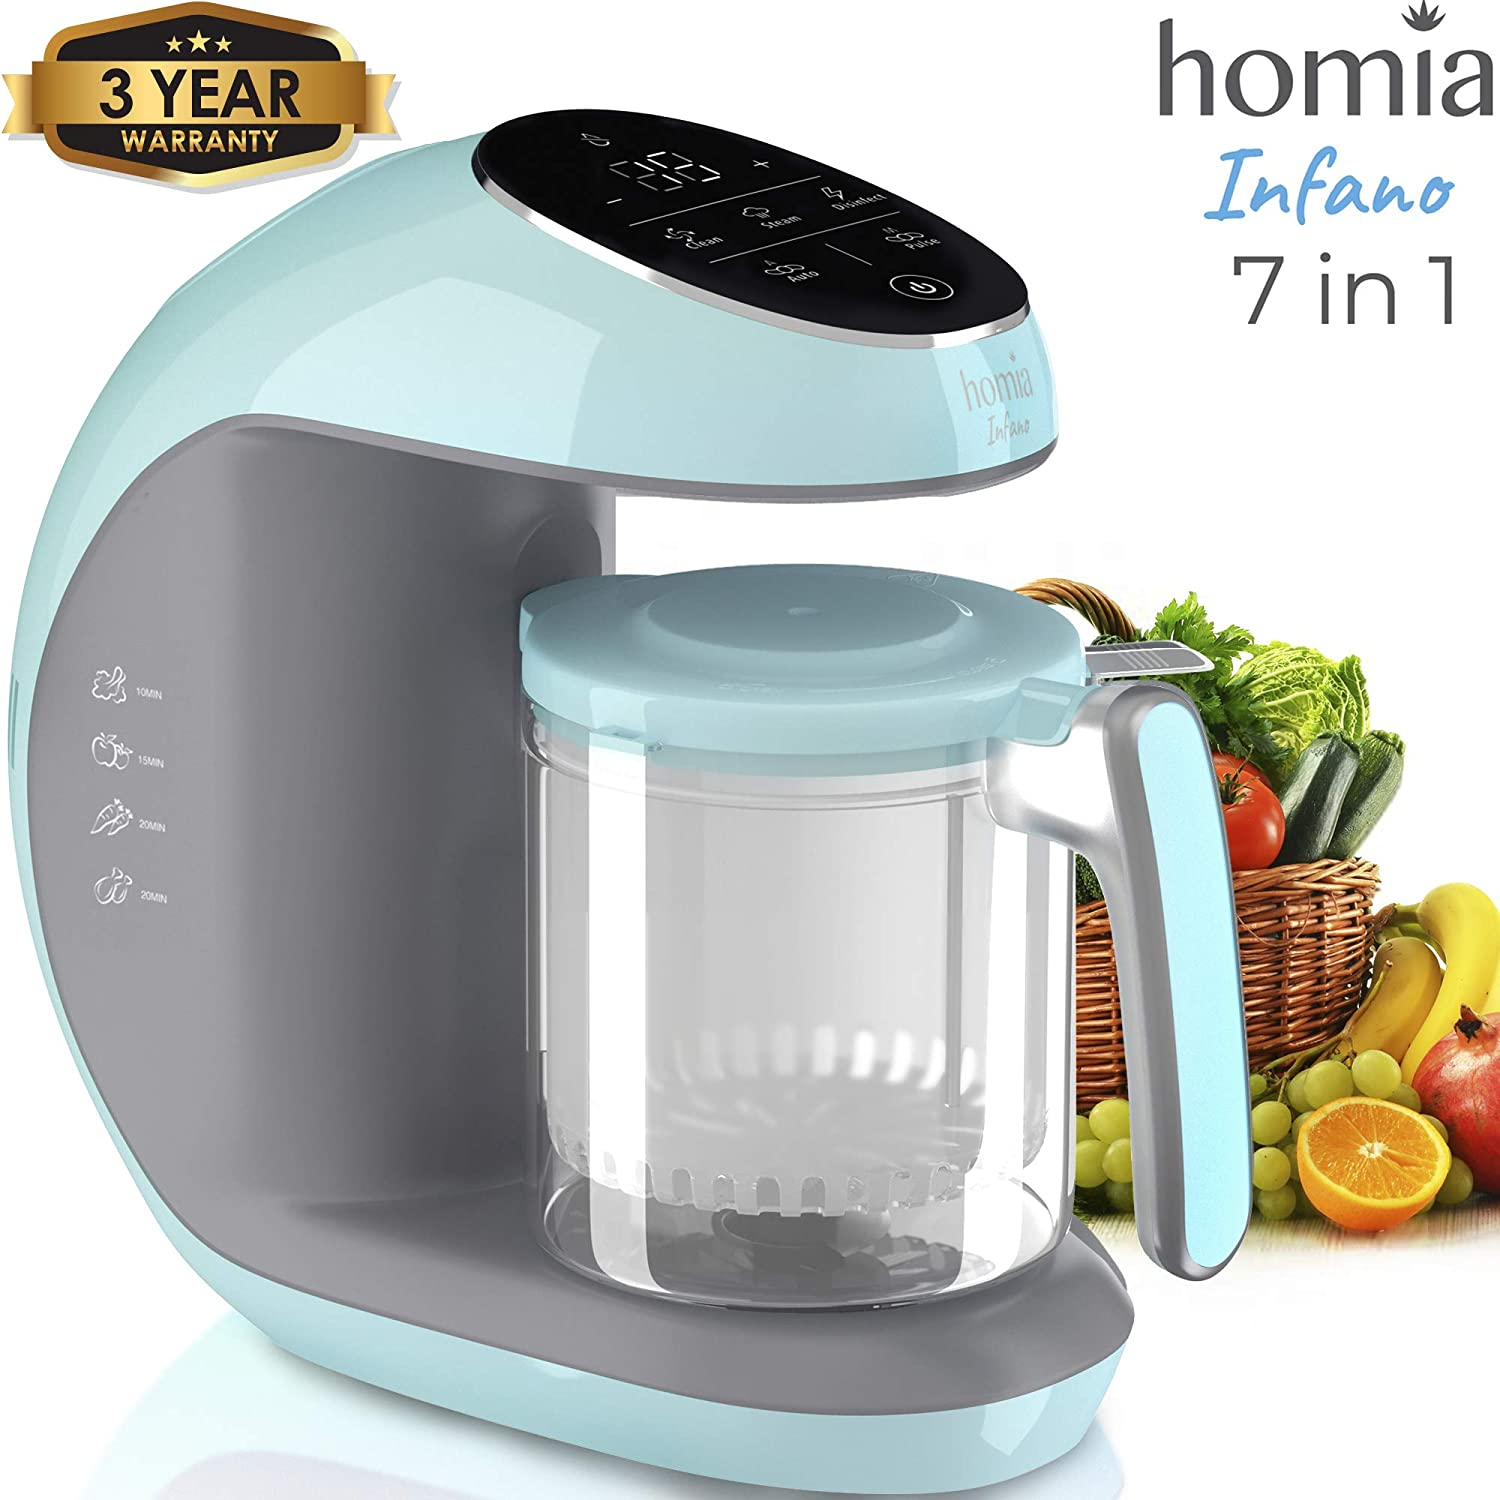 Baby Food Maker Chopper Grinder - Mills and Steamer 7 in 1 Processor For Toddlers With Steam, Blend, Chop, Disinfect, Clean Function, 20 Oz Tritan Stirring Cup, Touch Control Panel, Auto Shut-Off, 110V Only HOMIA Infano